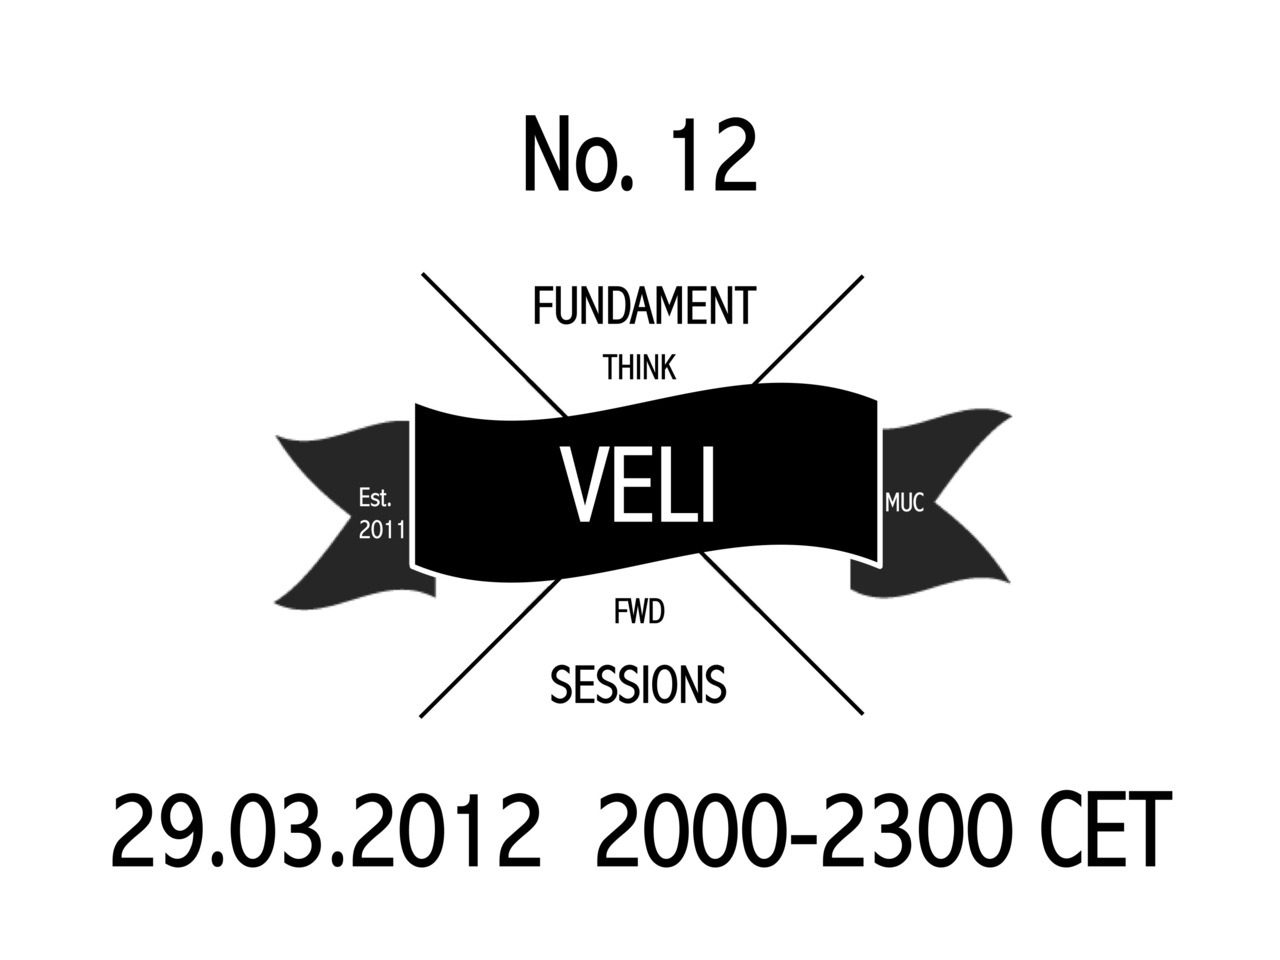 29.03.2012, 2000-2300 CET, Fundament Sessions #12 » WATCH THE LIVE-STREAM NOW! Lineup: Veli - Live! (Inside The Haze) Cat People Part 1 - Danny Zaster (Cat People)  Part 2 - Veli (live), Jaeckie Zucker (Cat People)